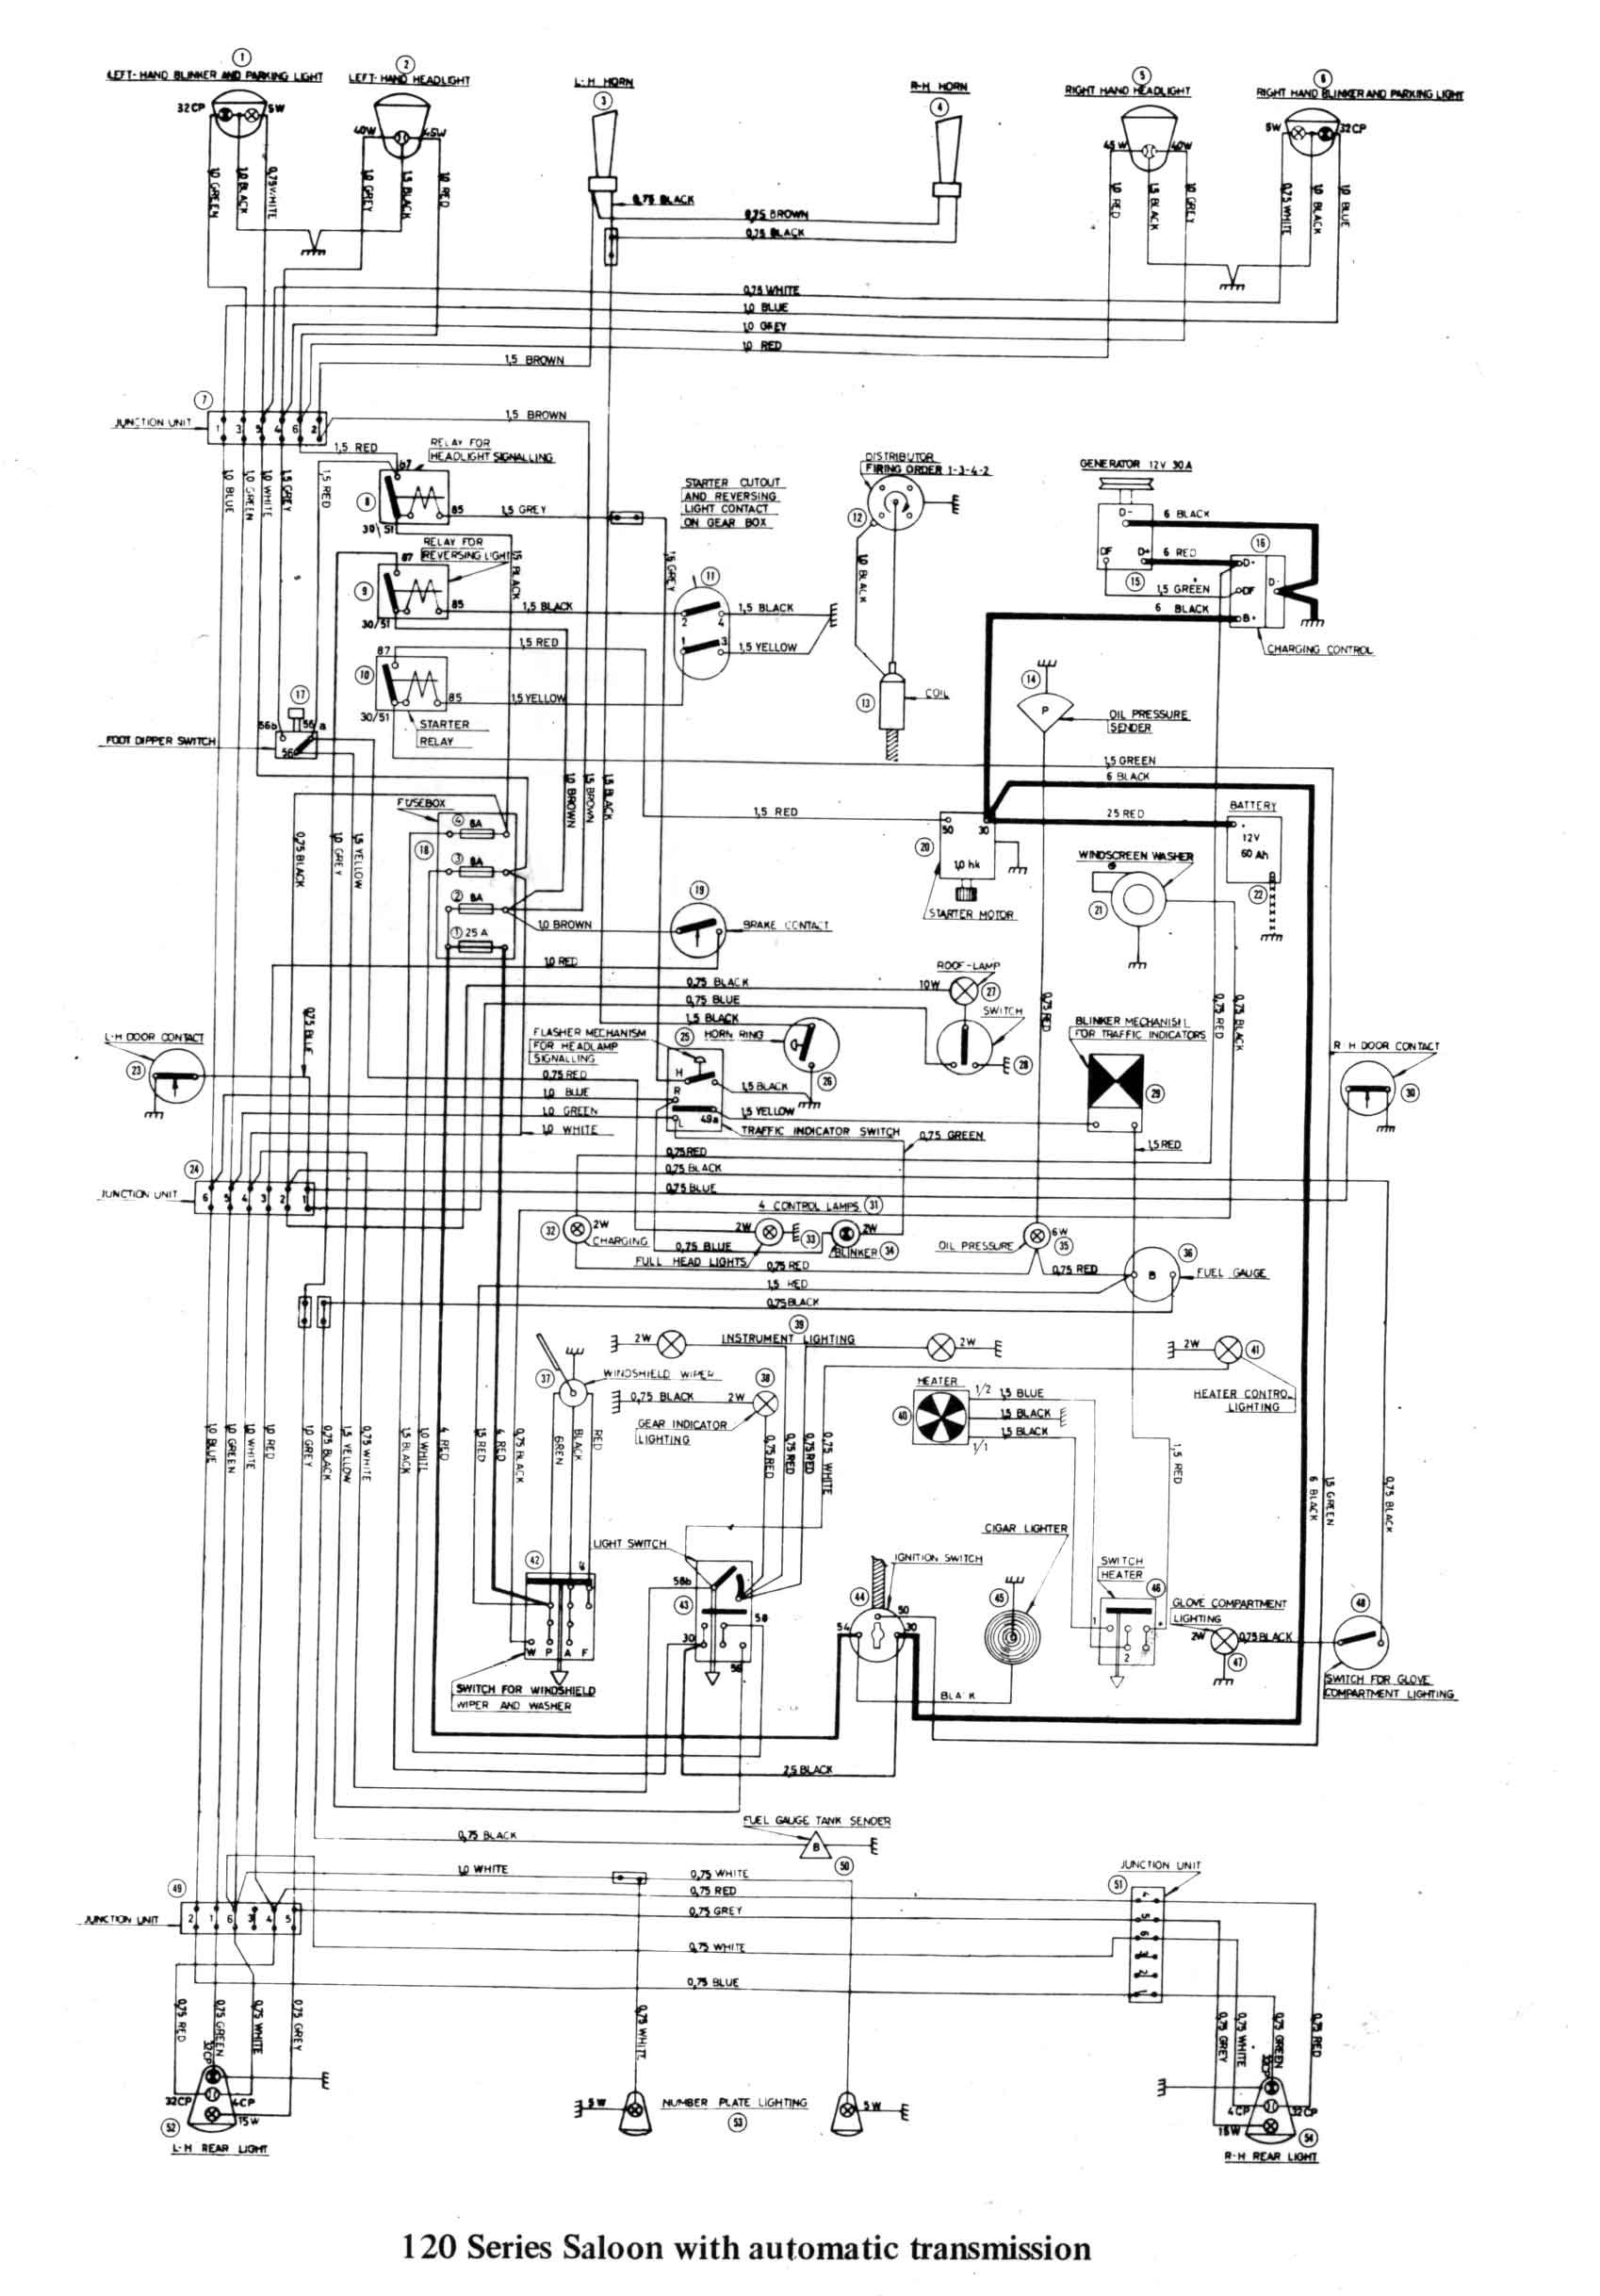 Mx5 Engine Bay Diagram S40 Engine Diagram Library Wiring Diagram • Of Mx5 Engine Bay Diagram